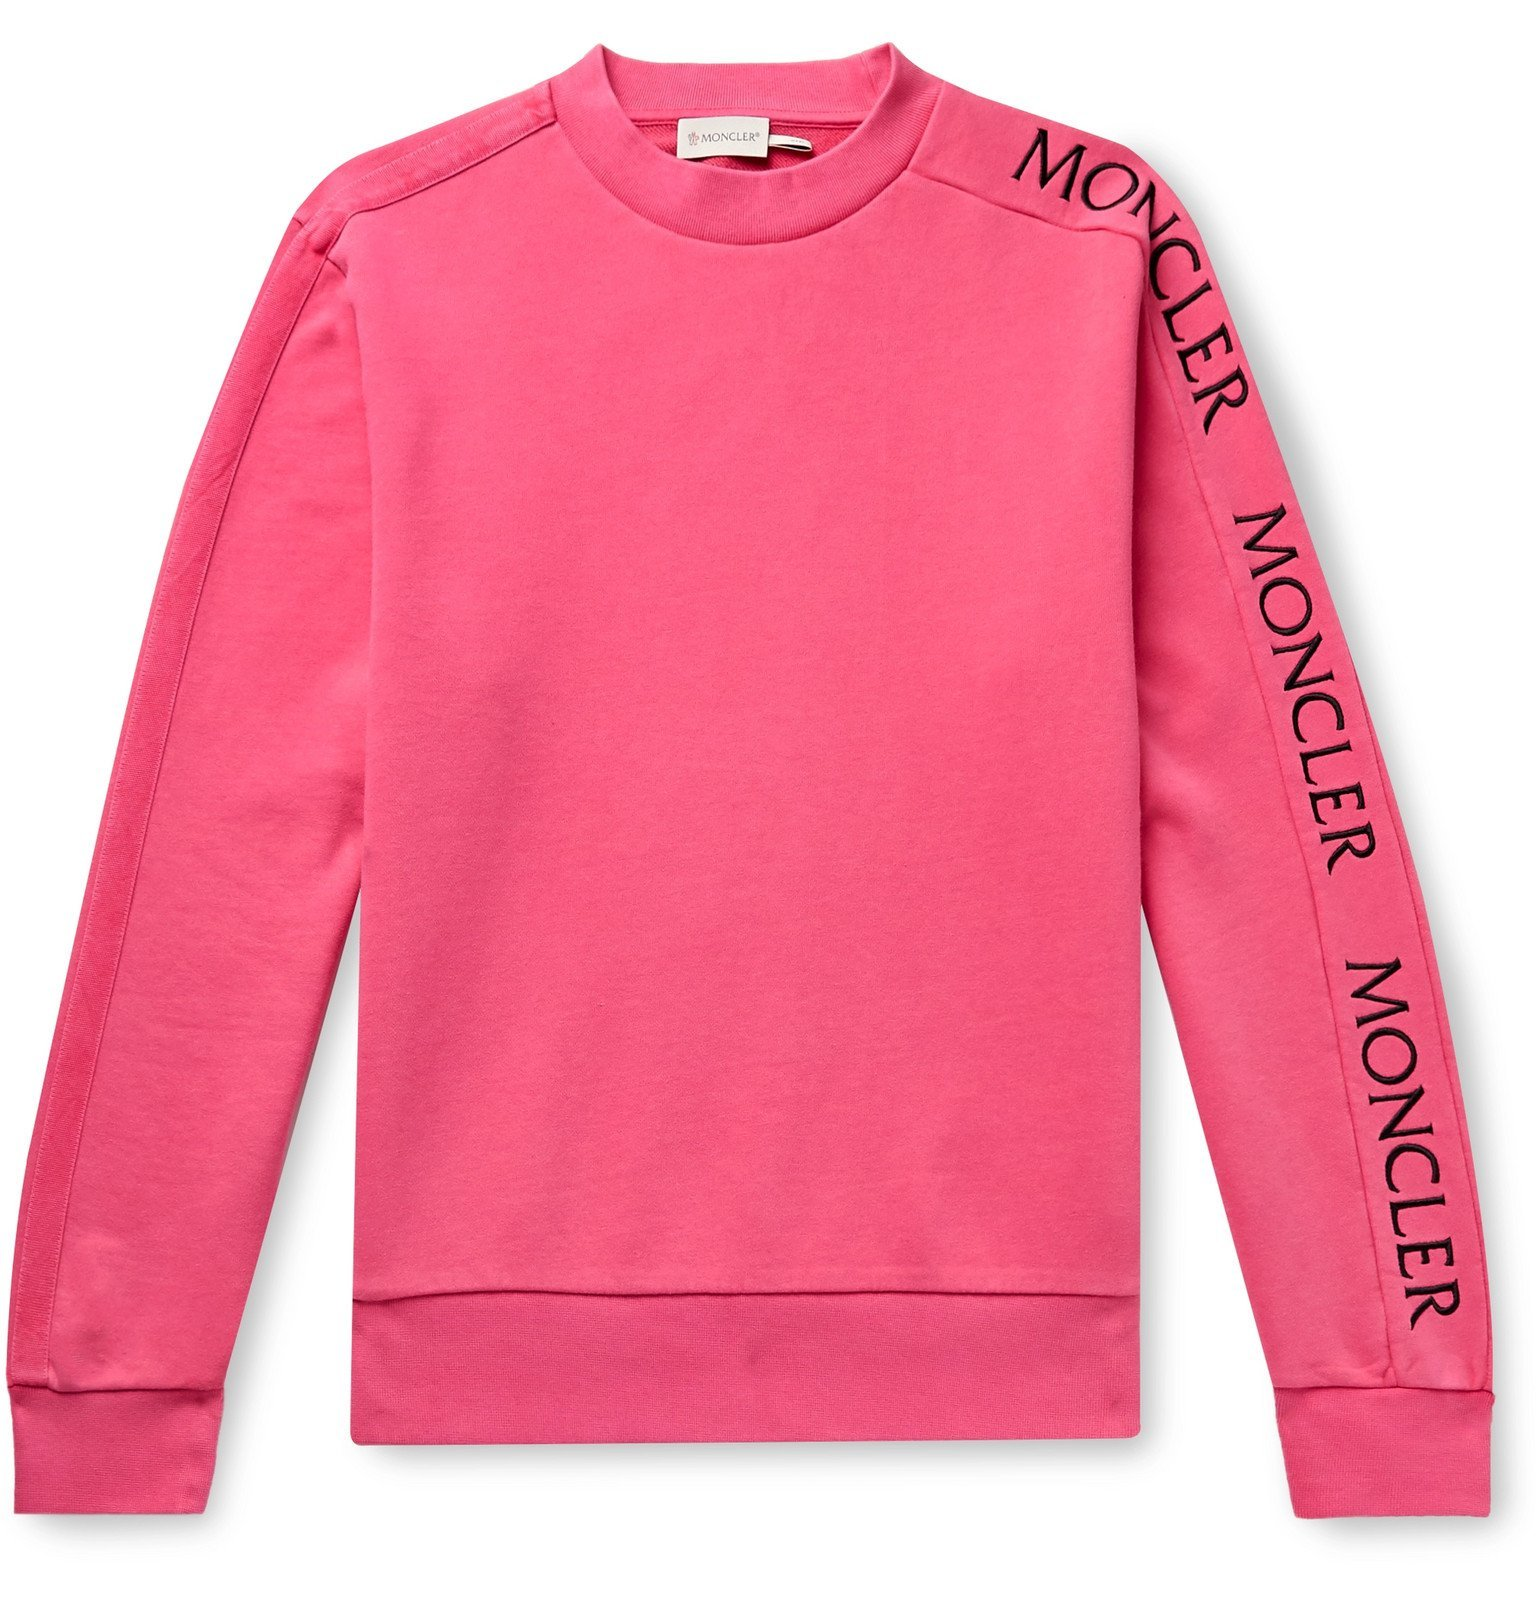 Moncler - Slim-Fit Logo-Embroidered Loopback Cotton-Jersey Sweatshirt - Pink